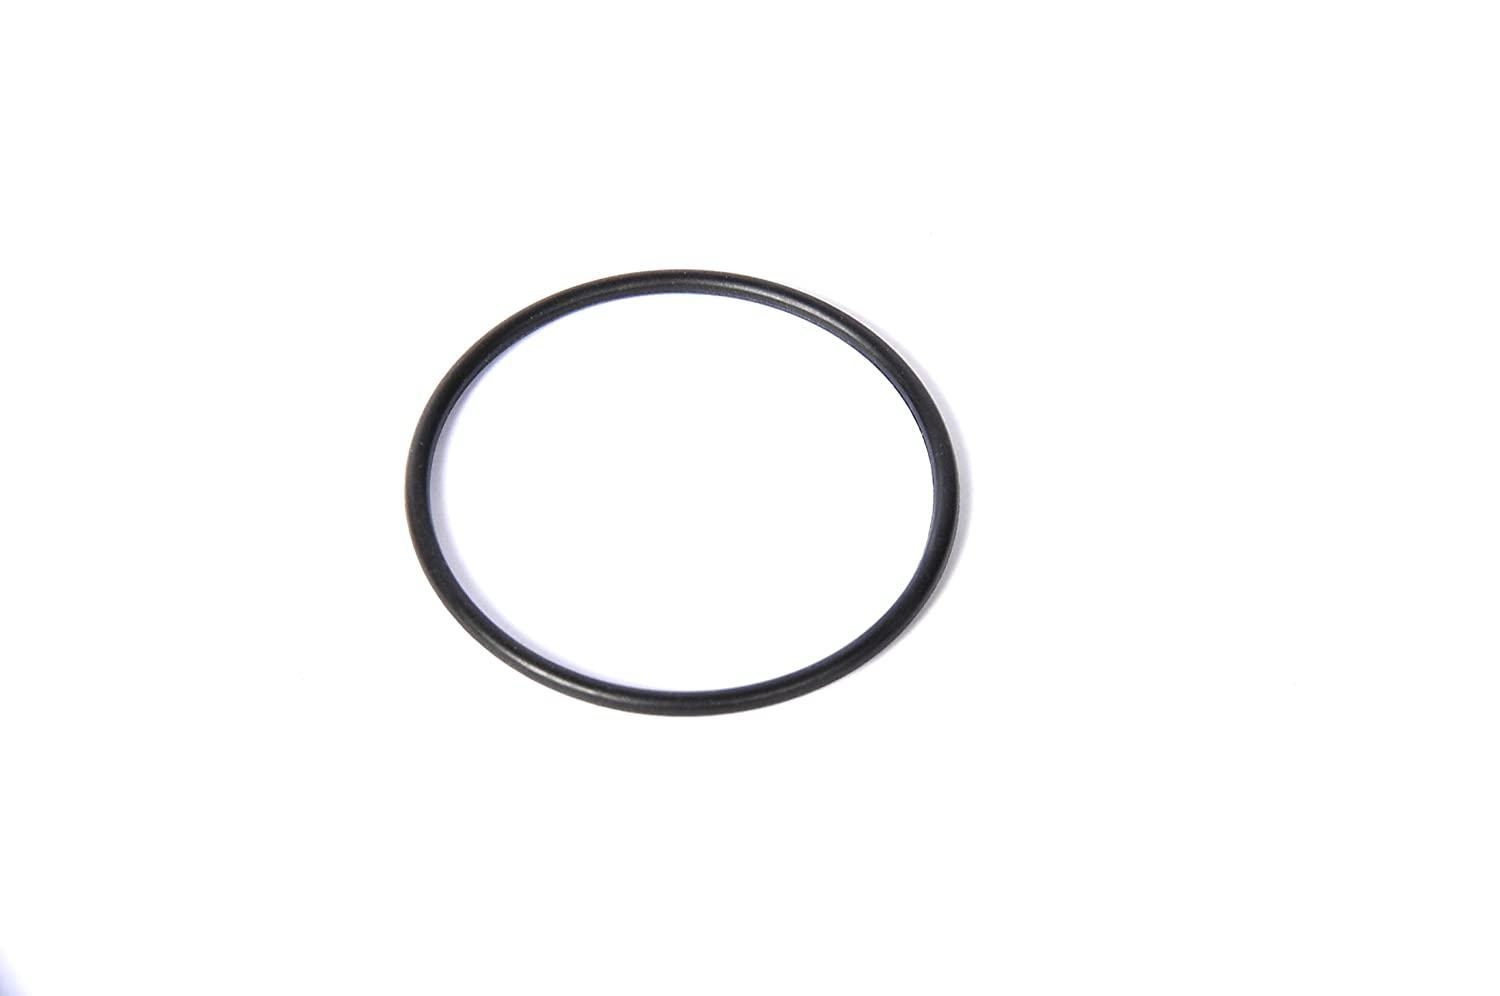 ACDelco 89059457 GM Original Equipment Manual Transmission Main Shaft Inner Seal O-Ring